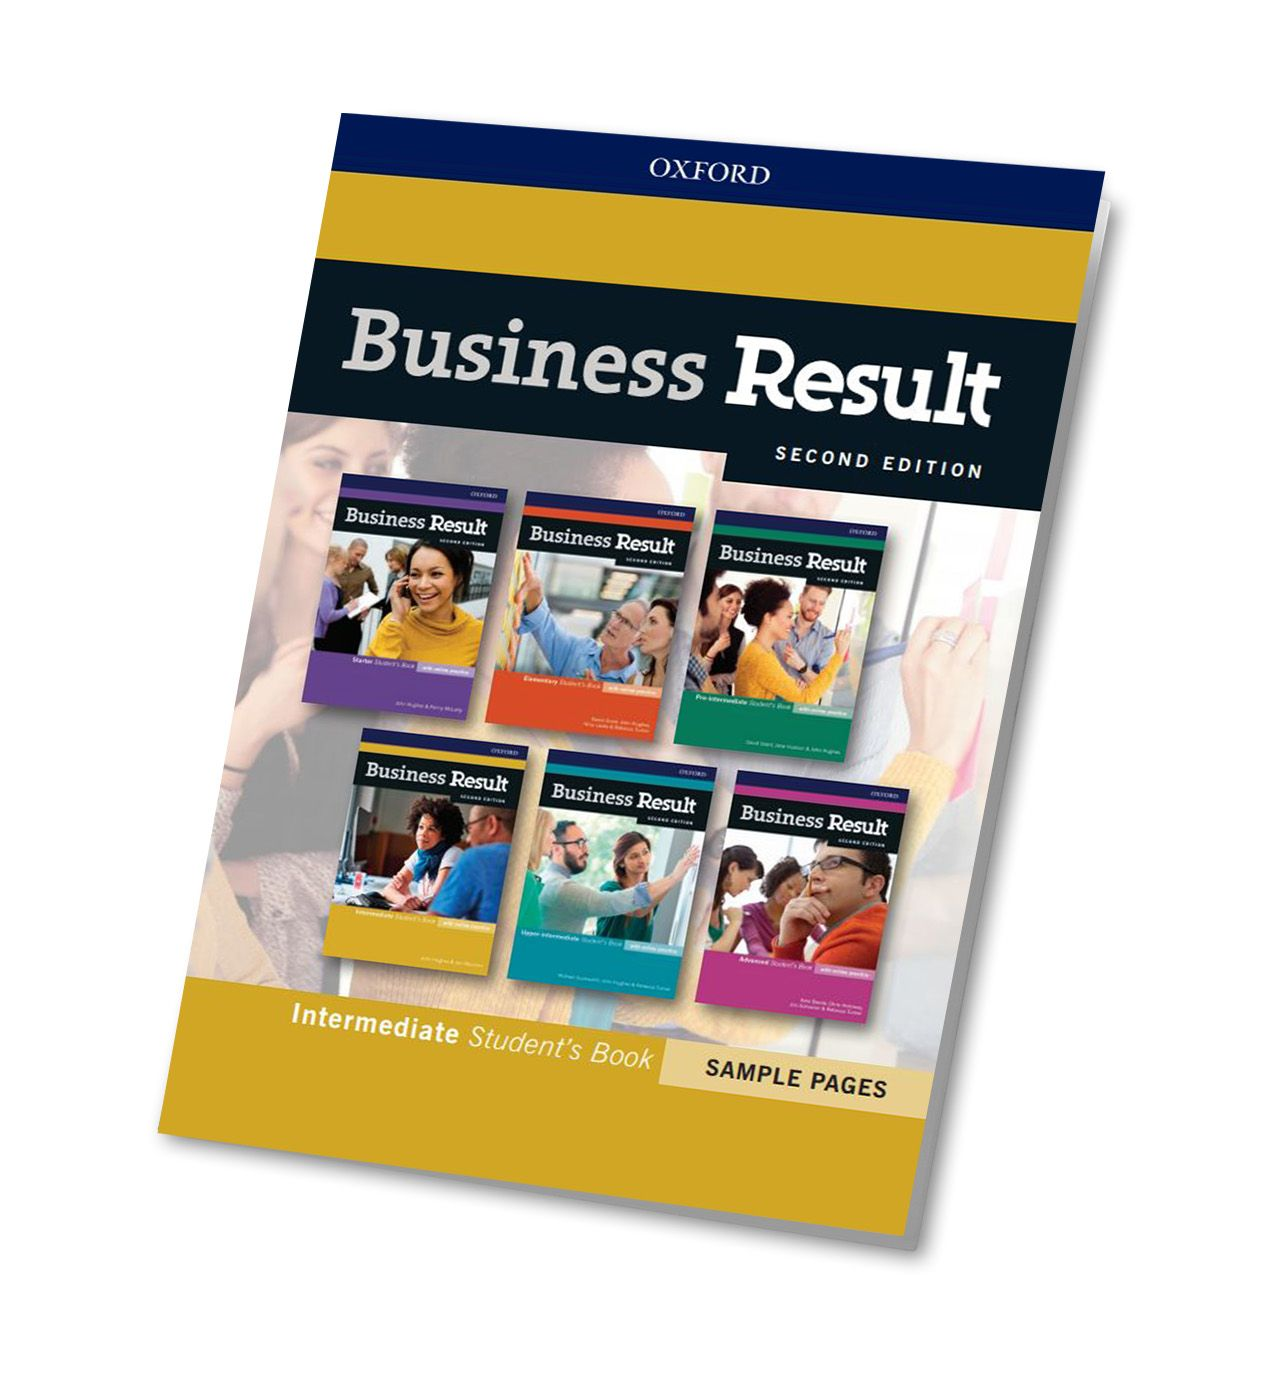 Business Result sample cover